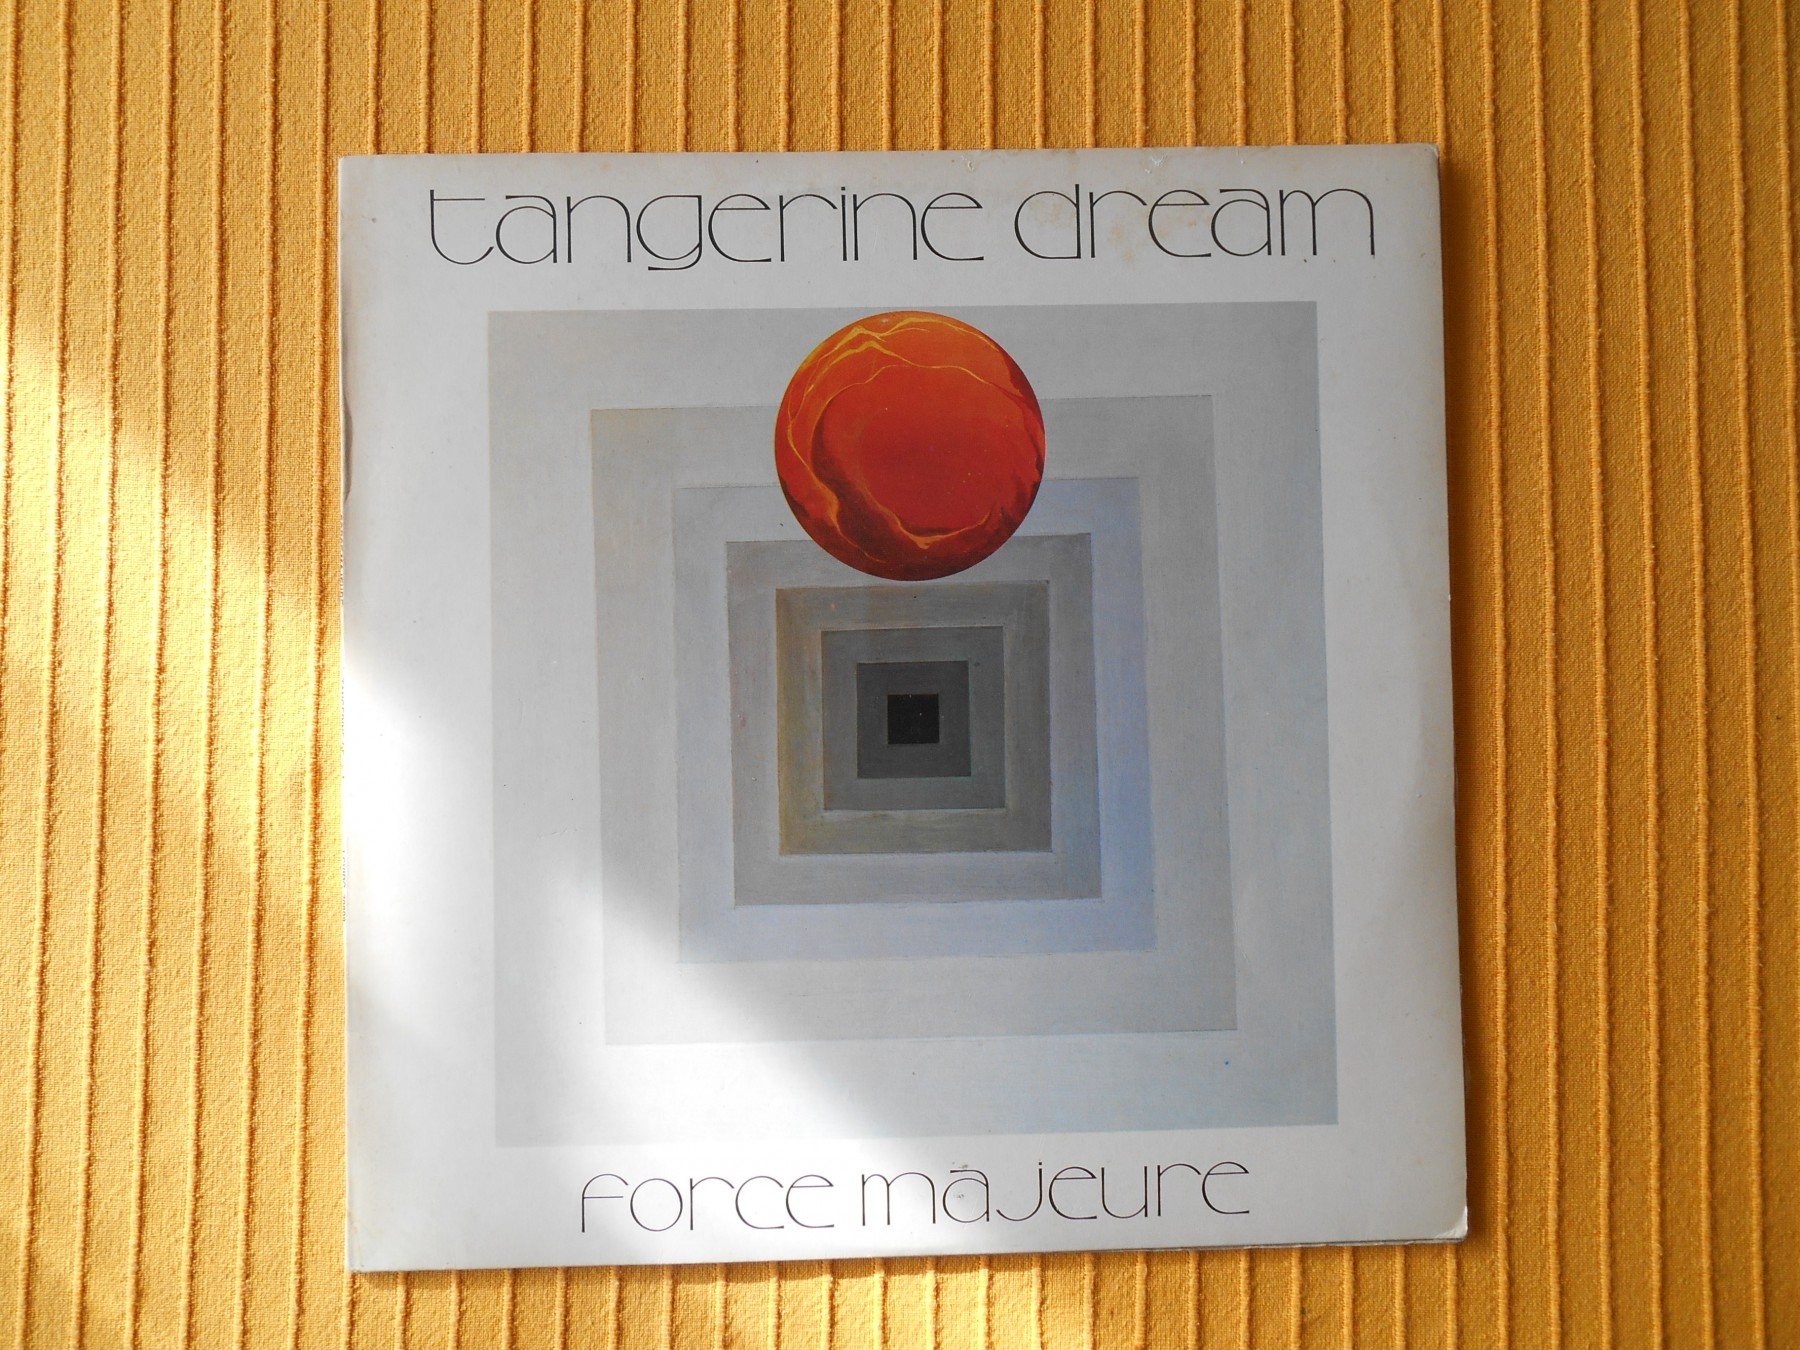 Tangerine Dream - Force Majeure - Kupindo com (29041365)